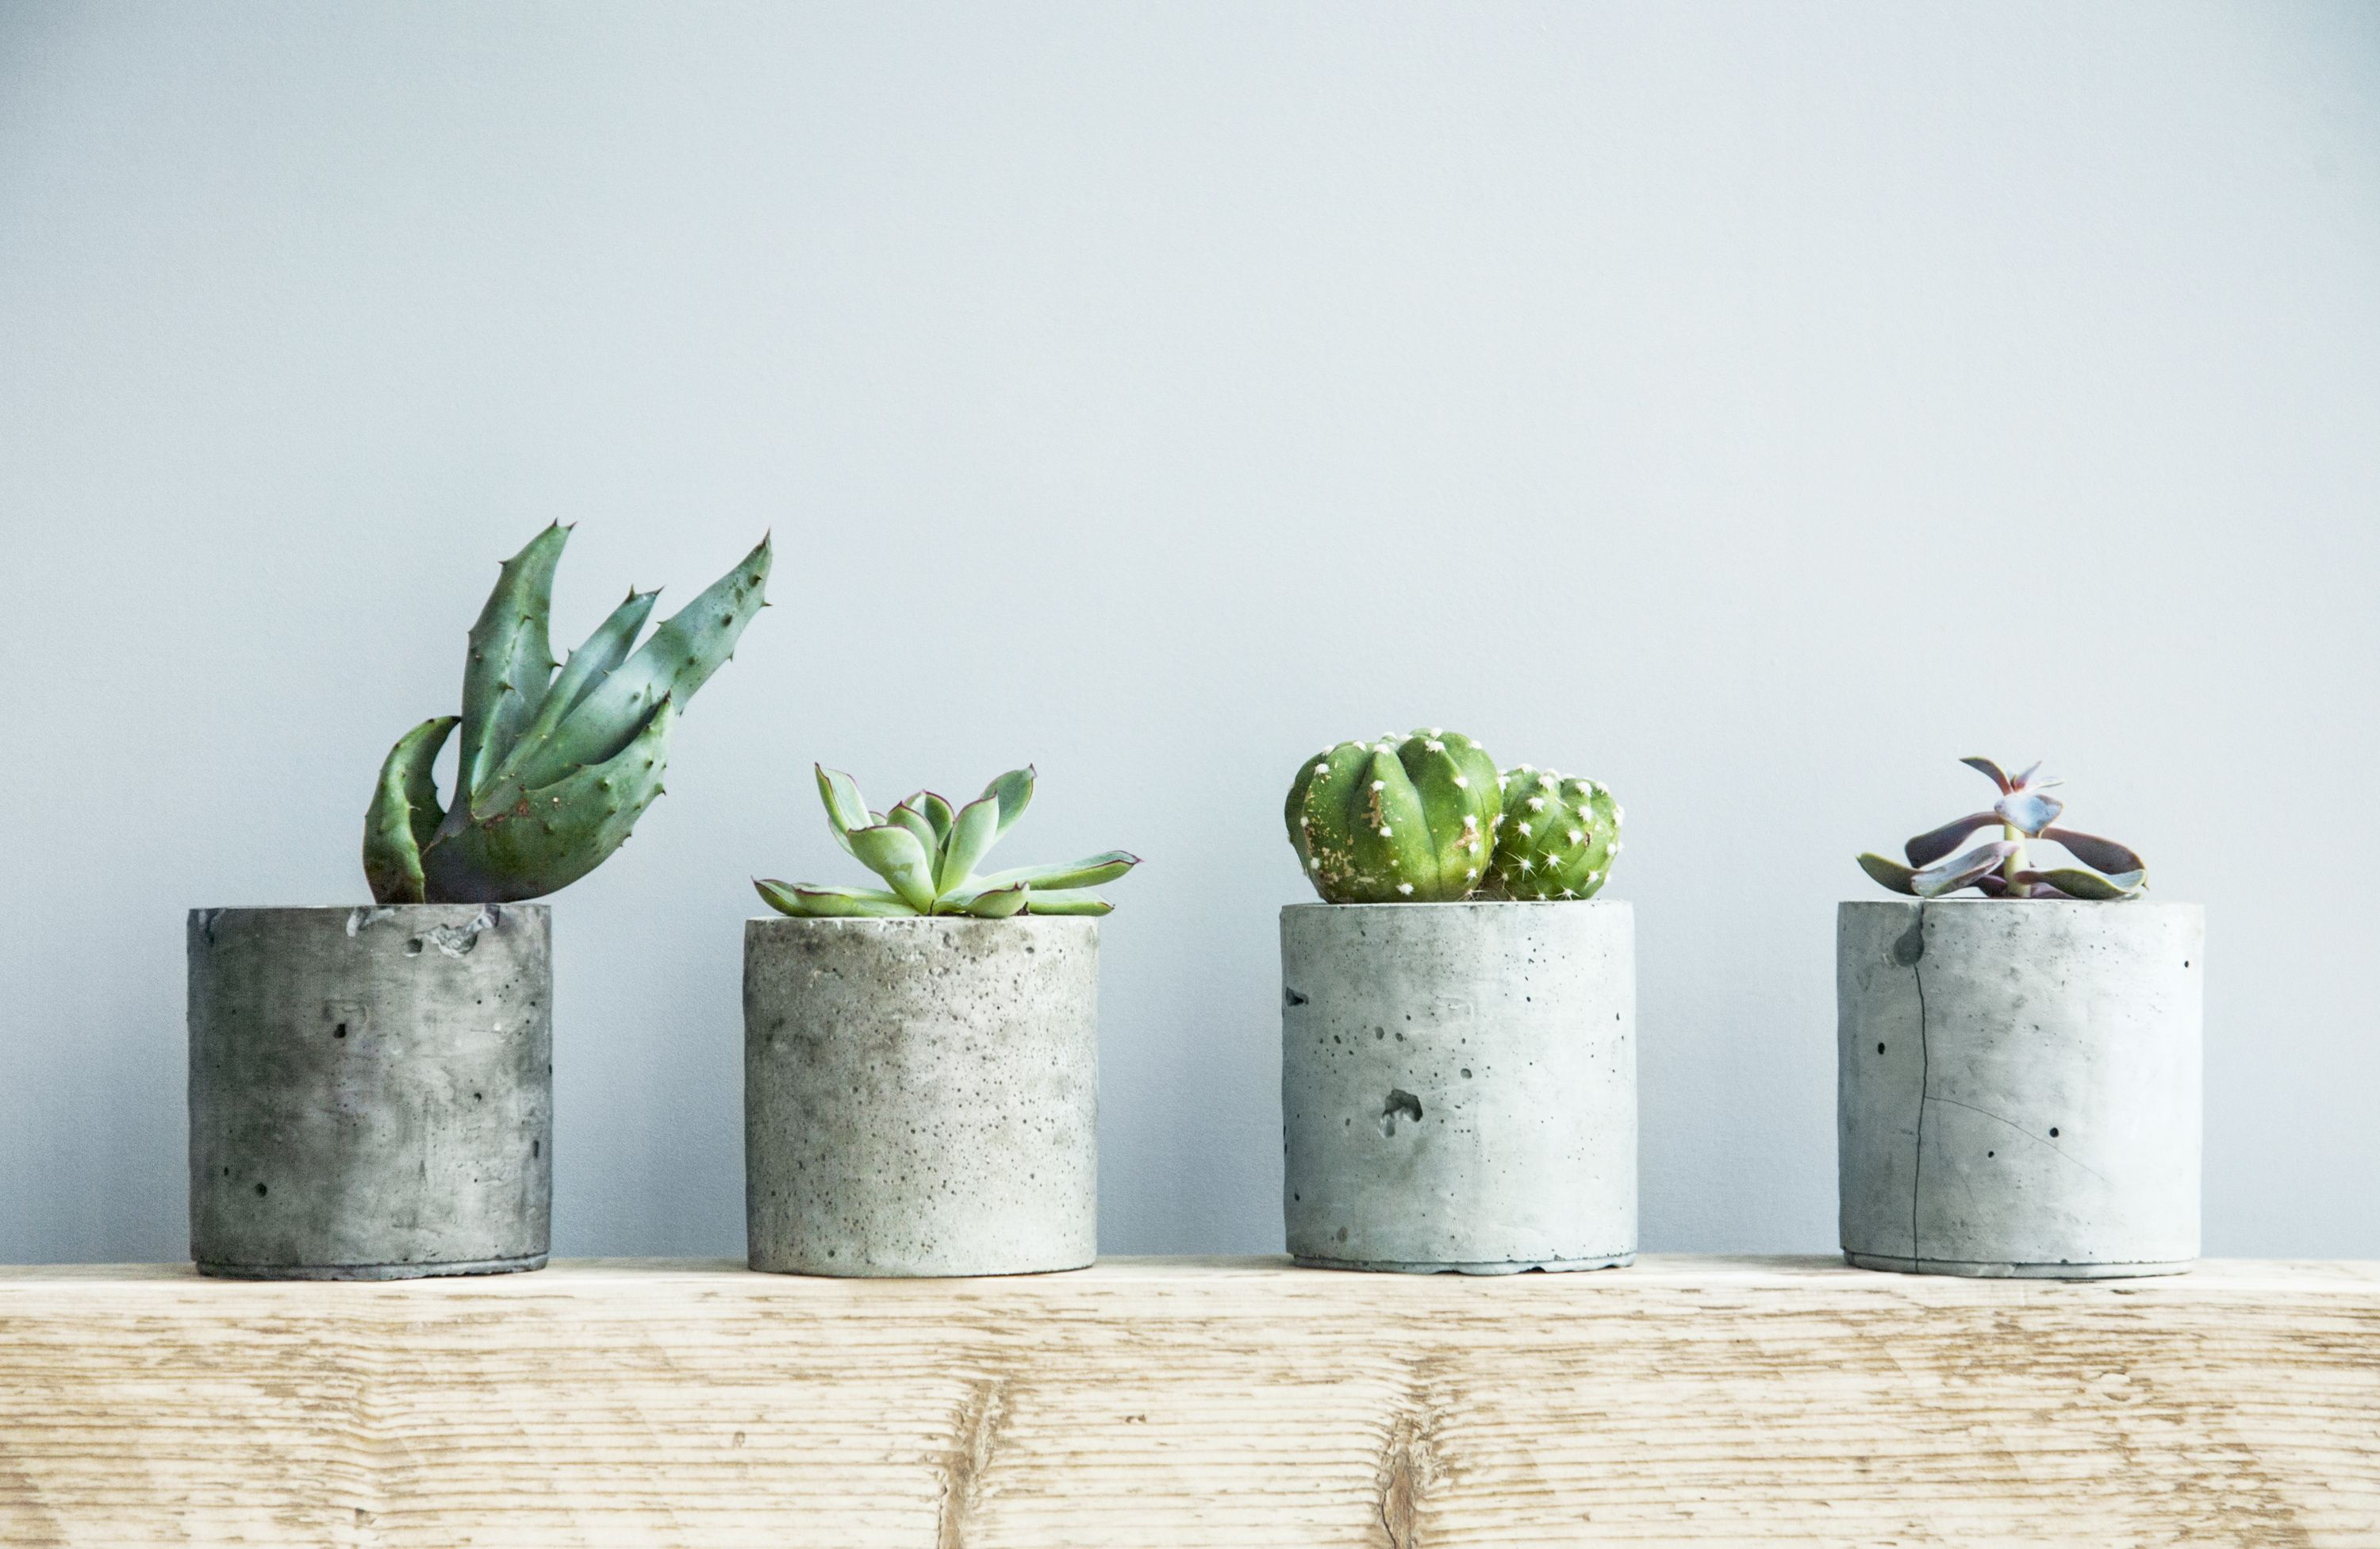 A row of potted plants